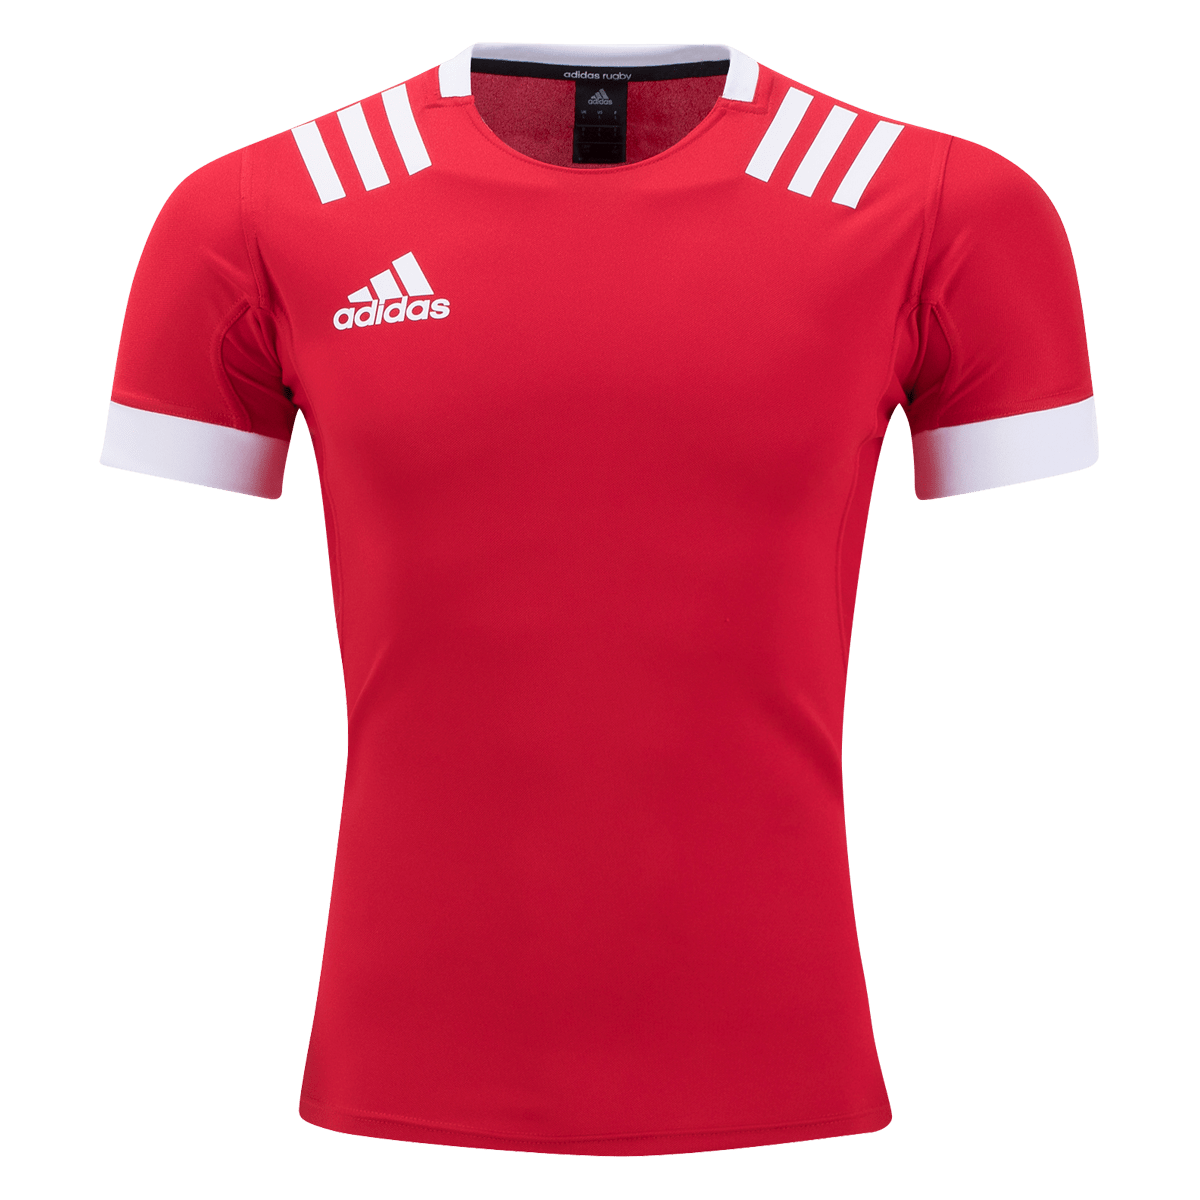 Red Adidas Rugby Jersey With White Stripes and Adidas Logo